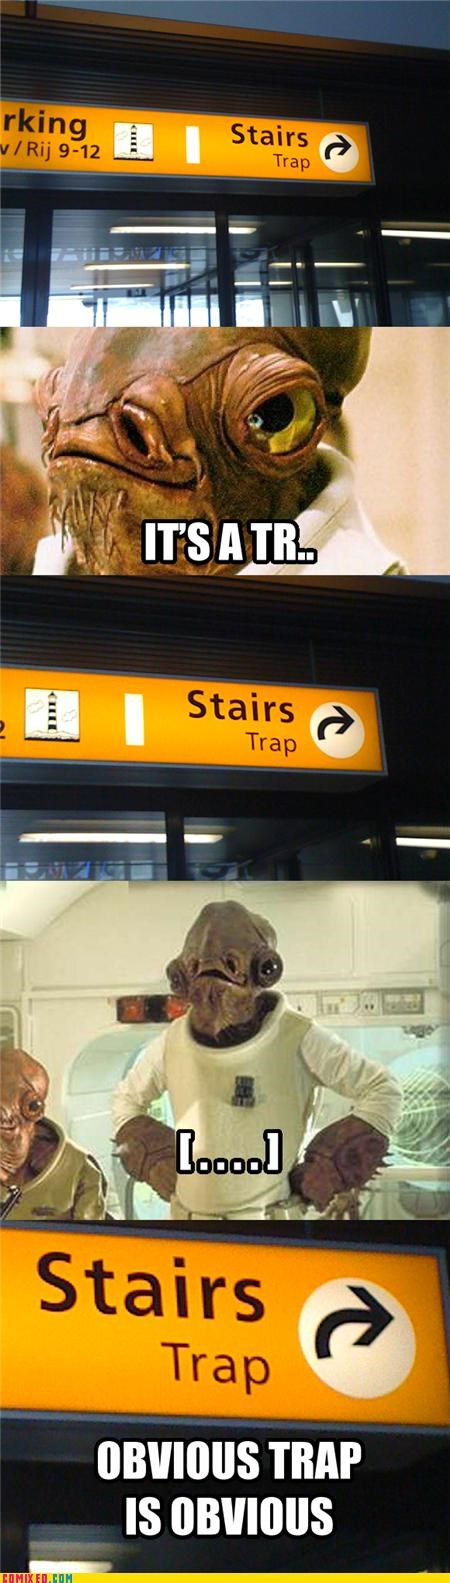 Don't take the stairs